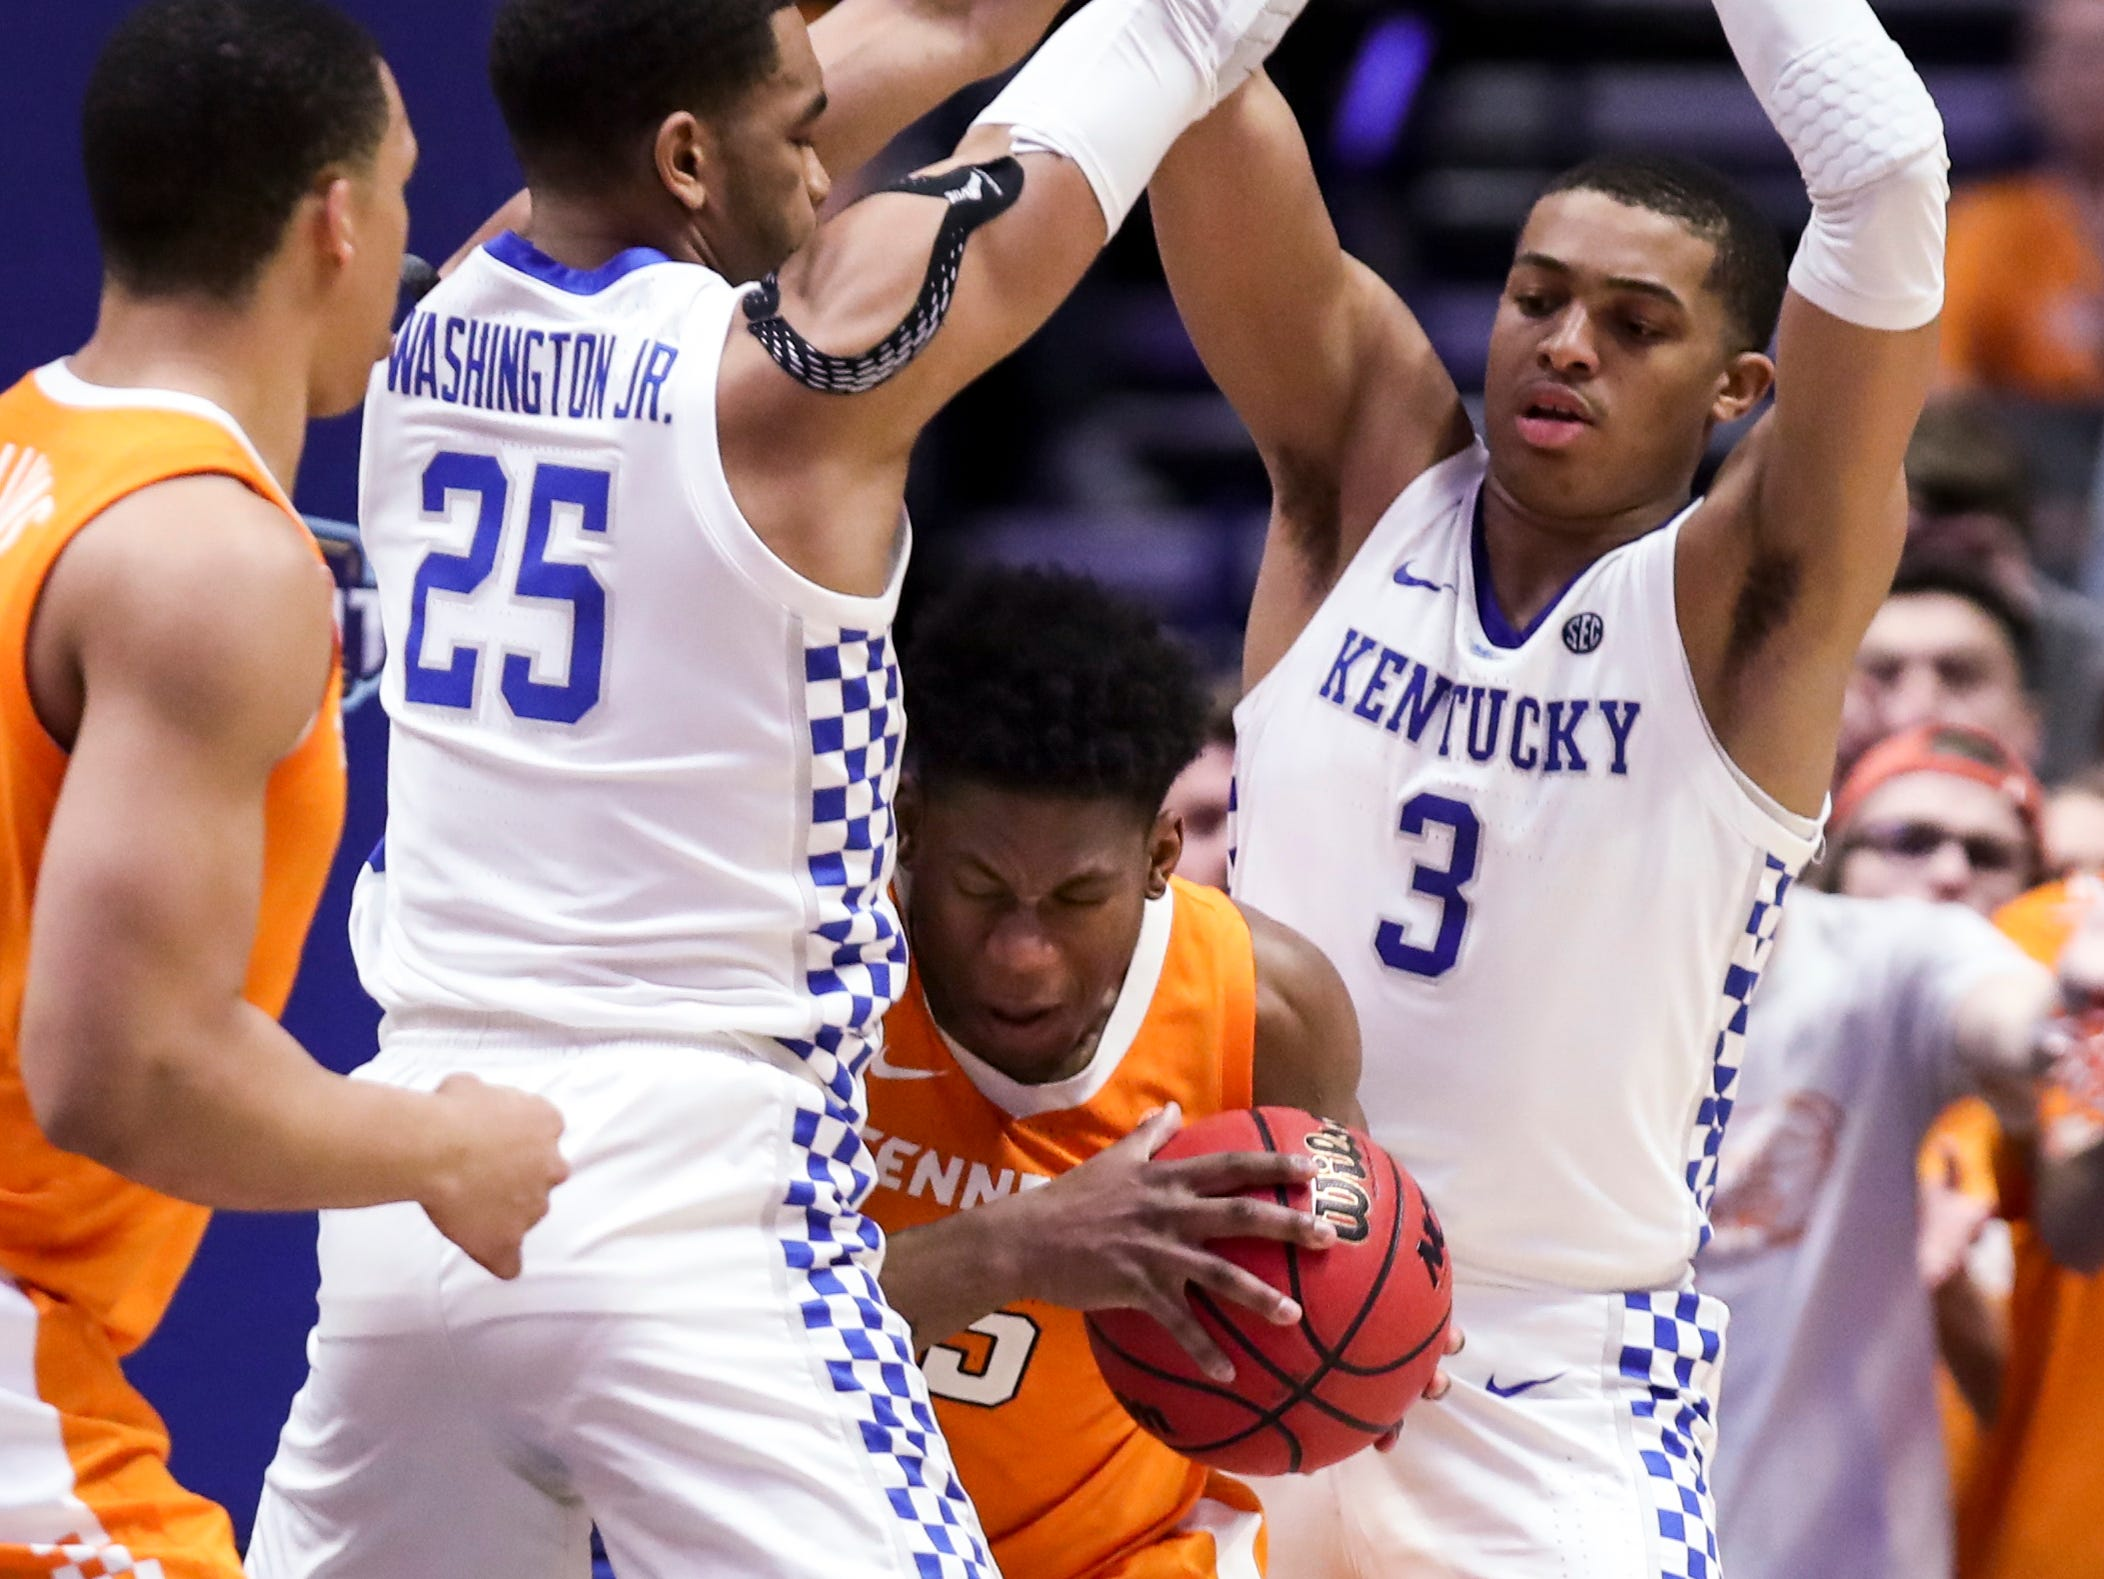 Kentucky forward PJ Washington (25) and guard Keldon Johnson (3) guard Tennessee guard Admiral Schofield (5) during the second half of the SEC Men's Basketball Tournament semifinal game at Bridgestone Arena in Nashville, Tenn., Saturday, March 16, 2019.